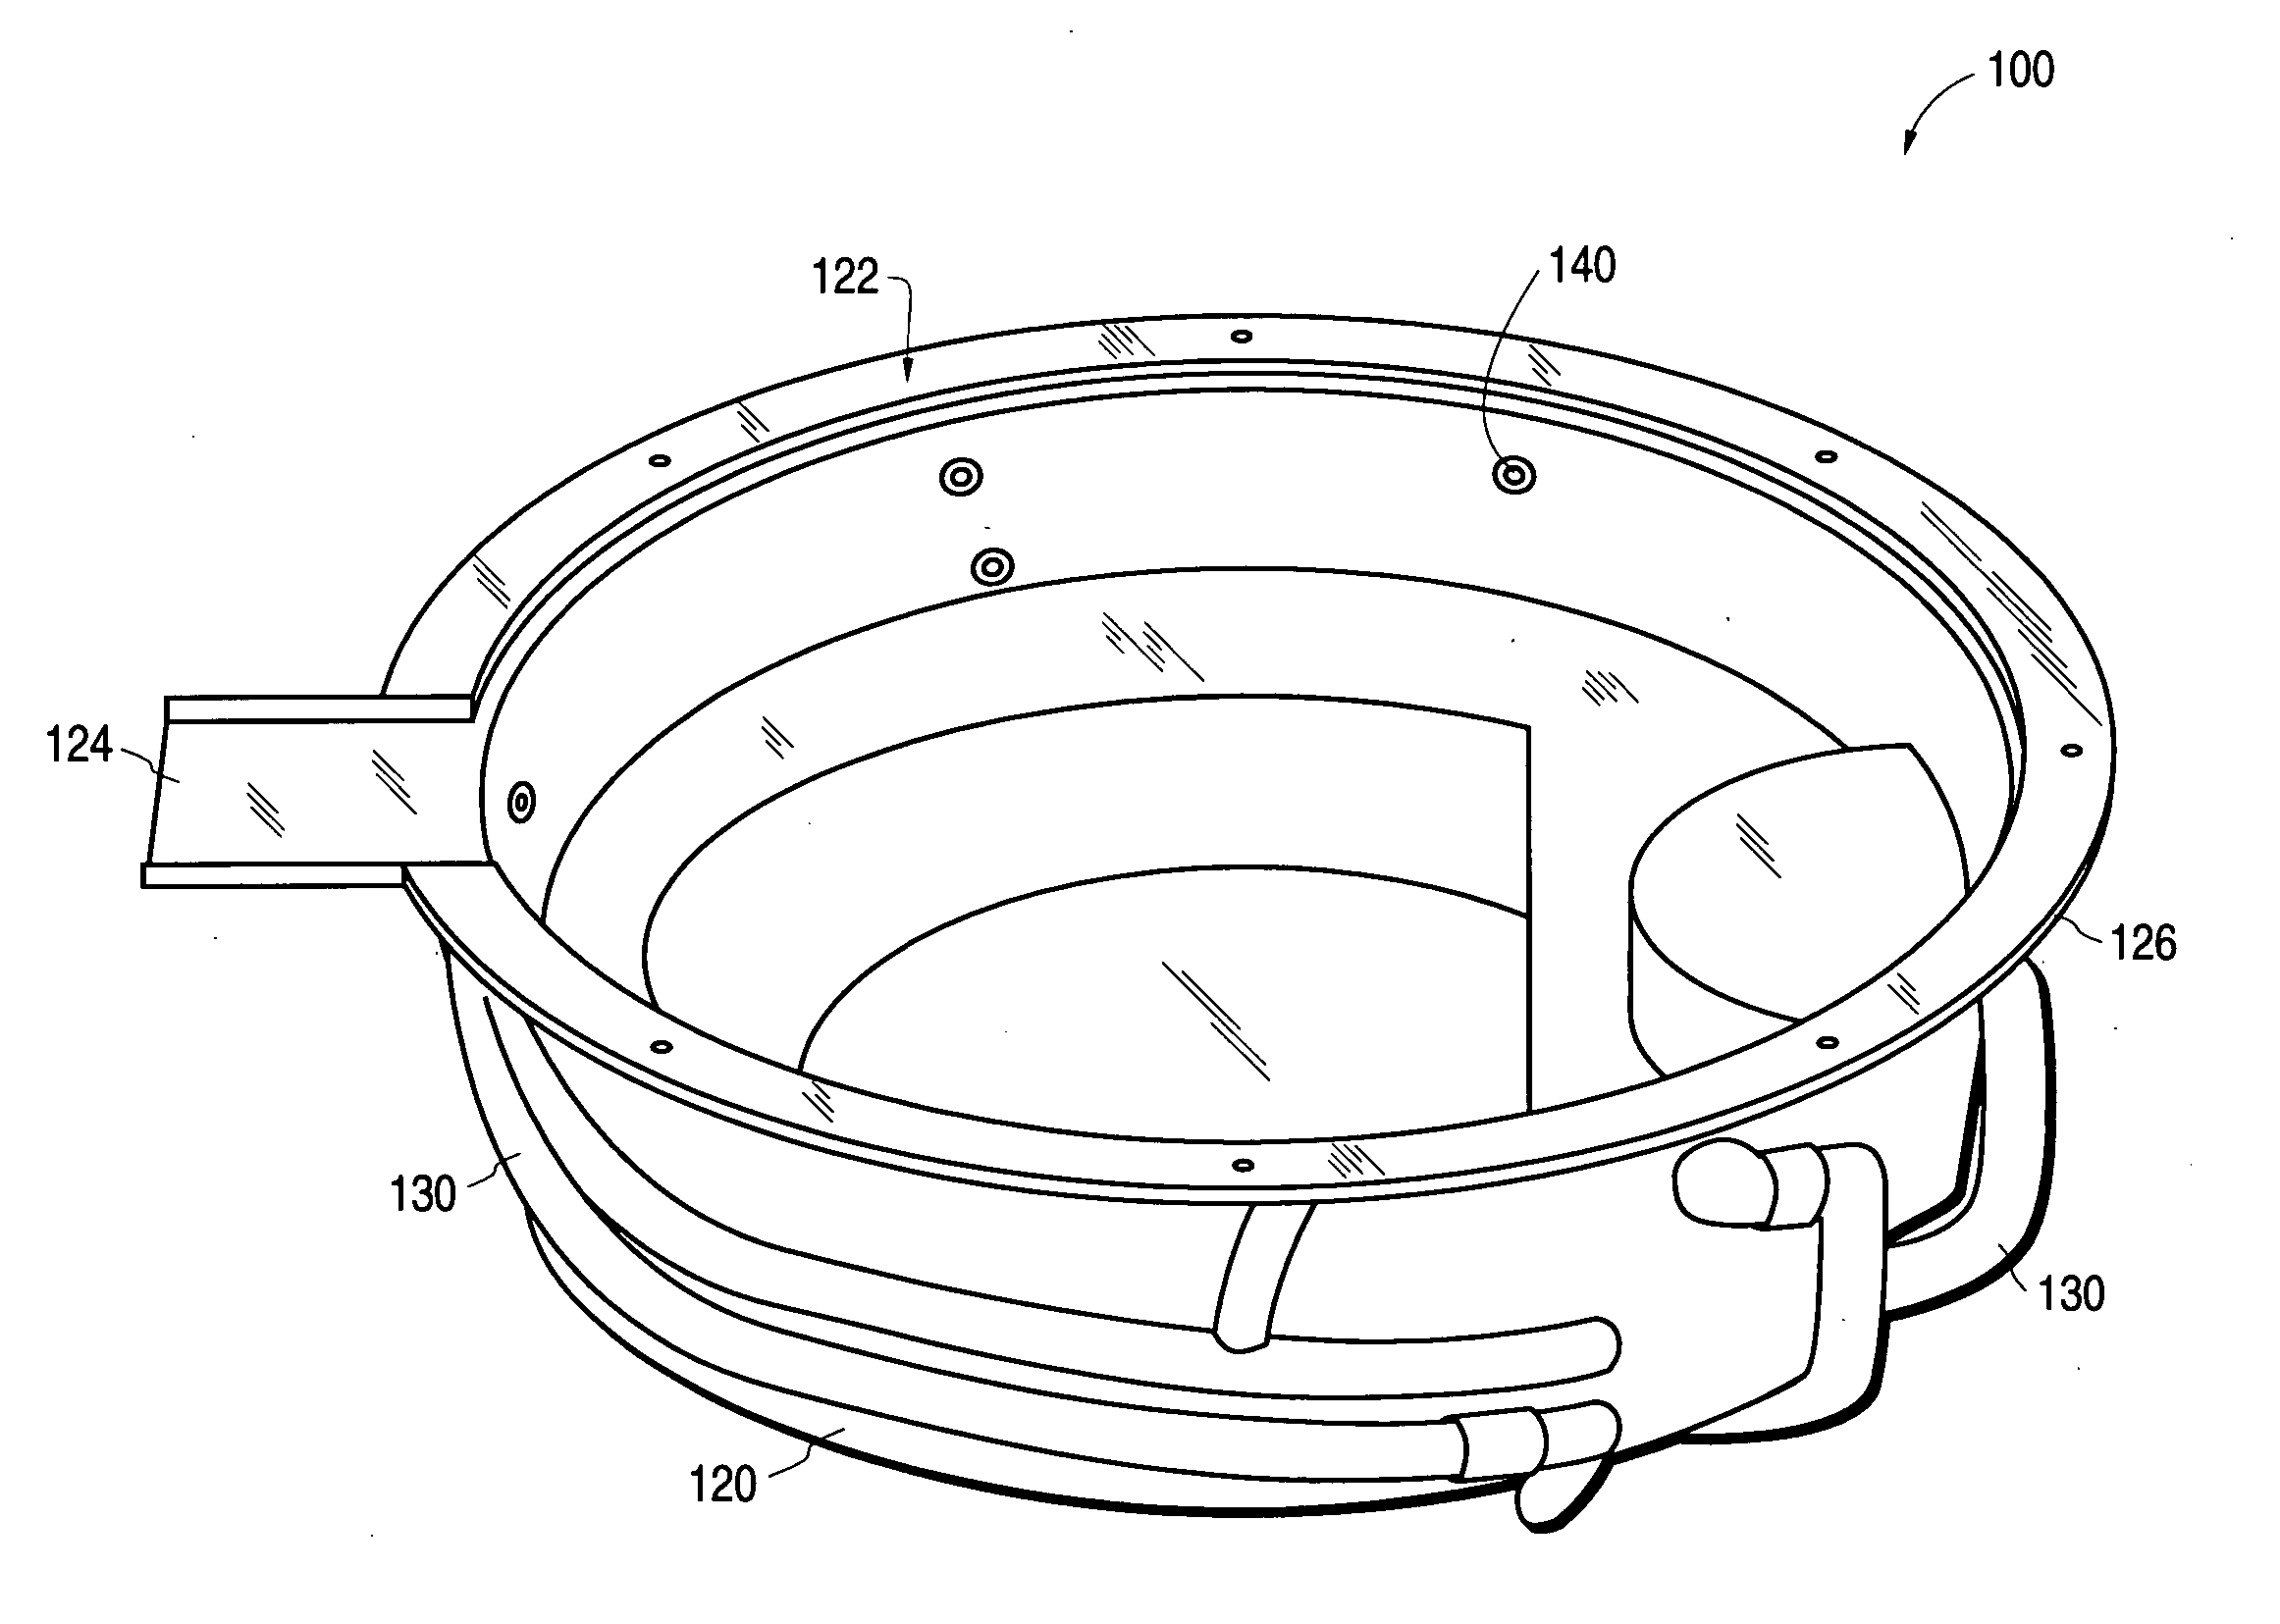 patent us20050198731 - spa insert with flat upper flange and integral spill way